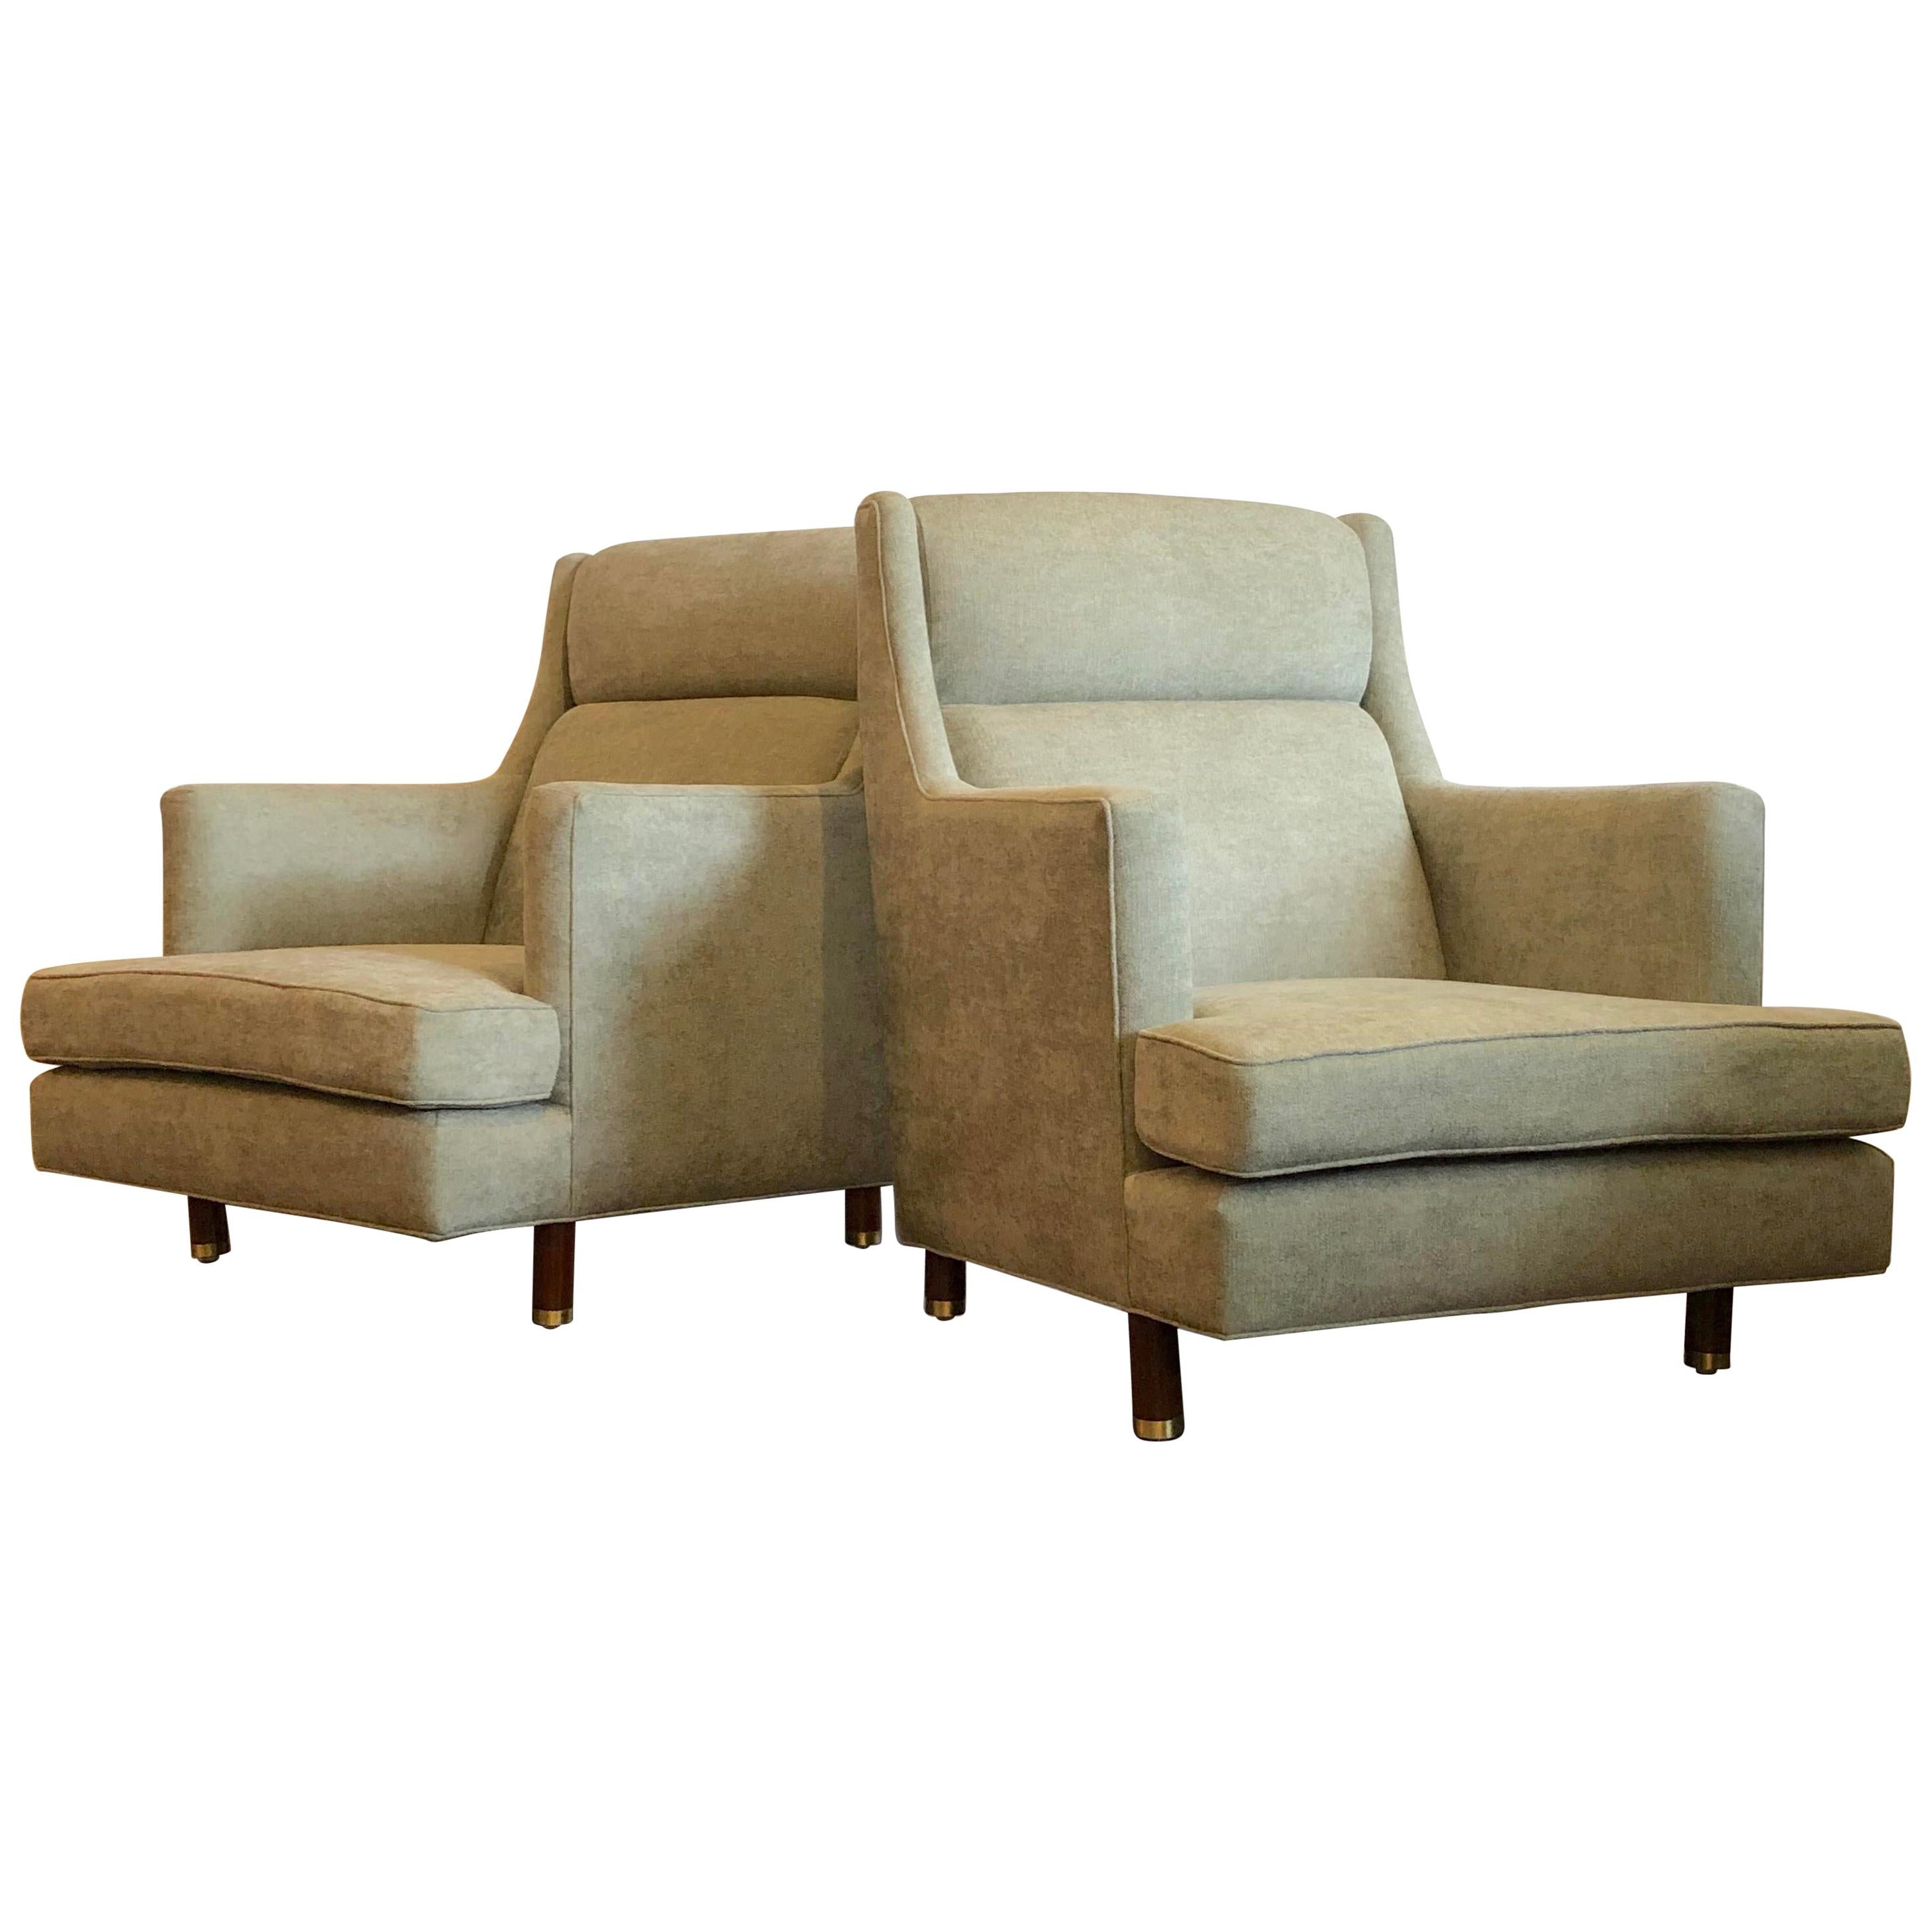 Scarce Large Scale Lounge Chairs by Edward Wormley for Dunbar